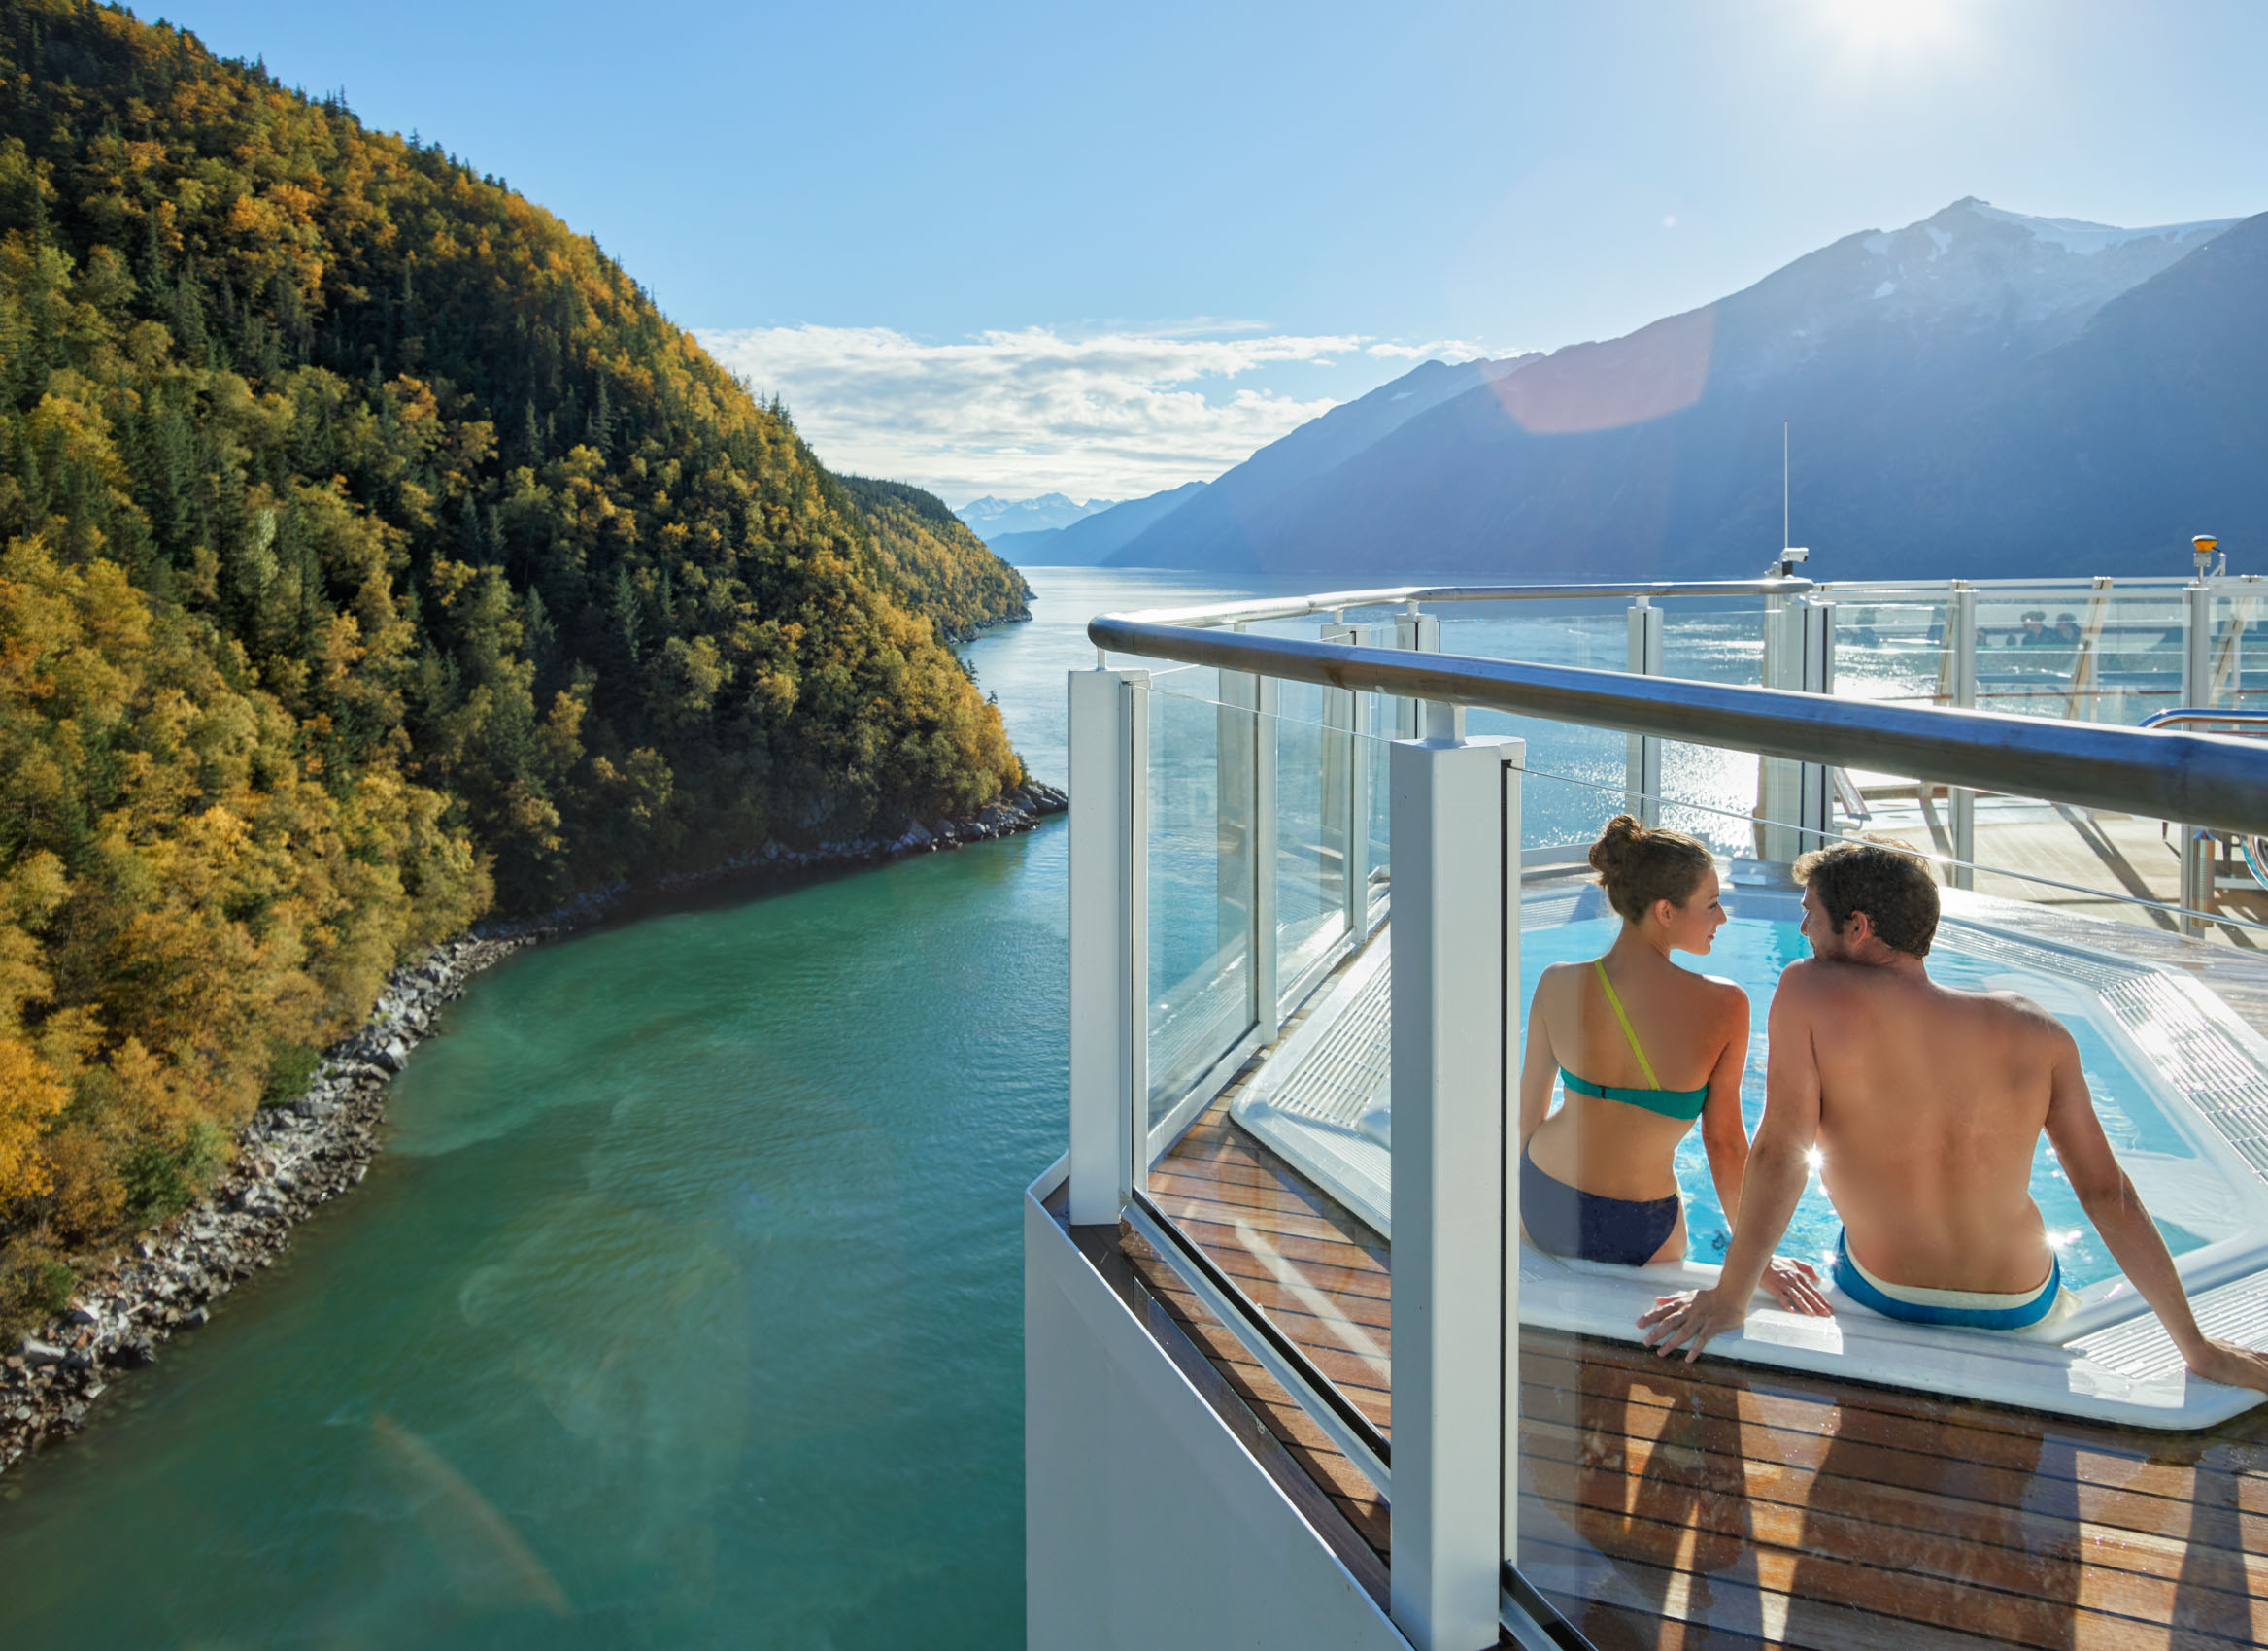 Kevin Steele - a couple enjoy the hot tub on a cruise ship